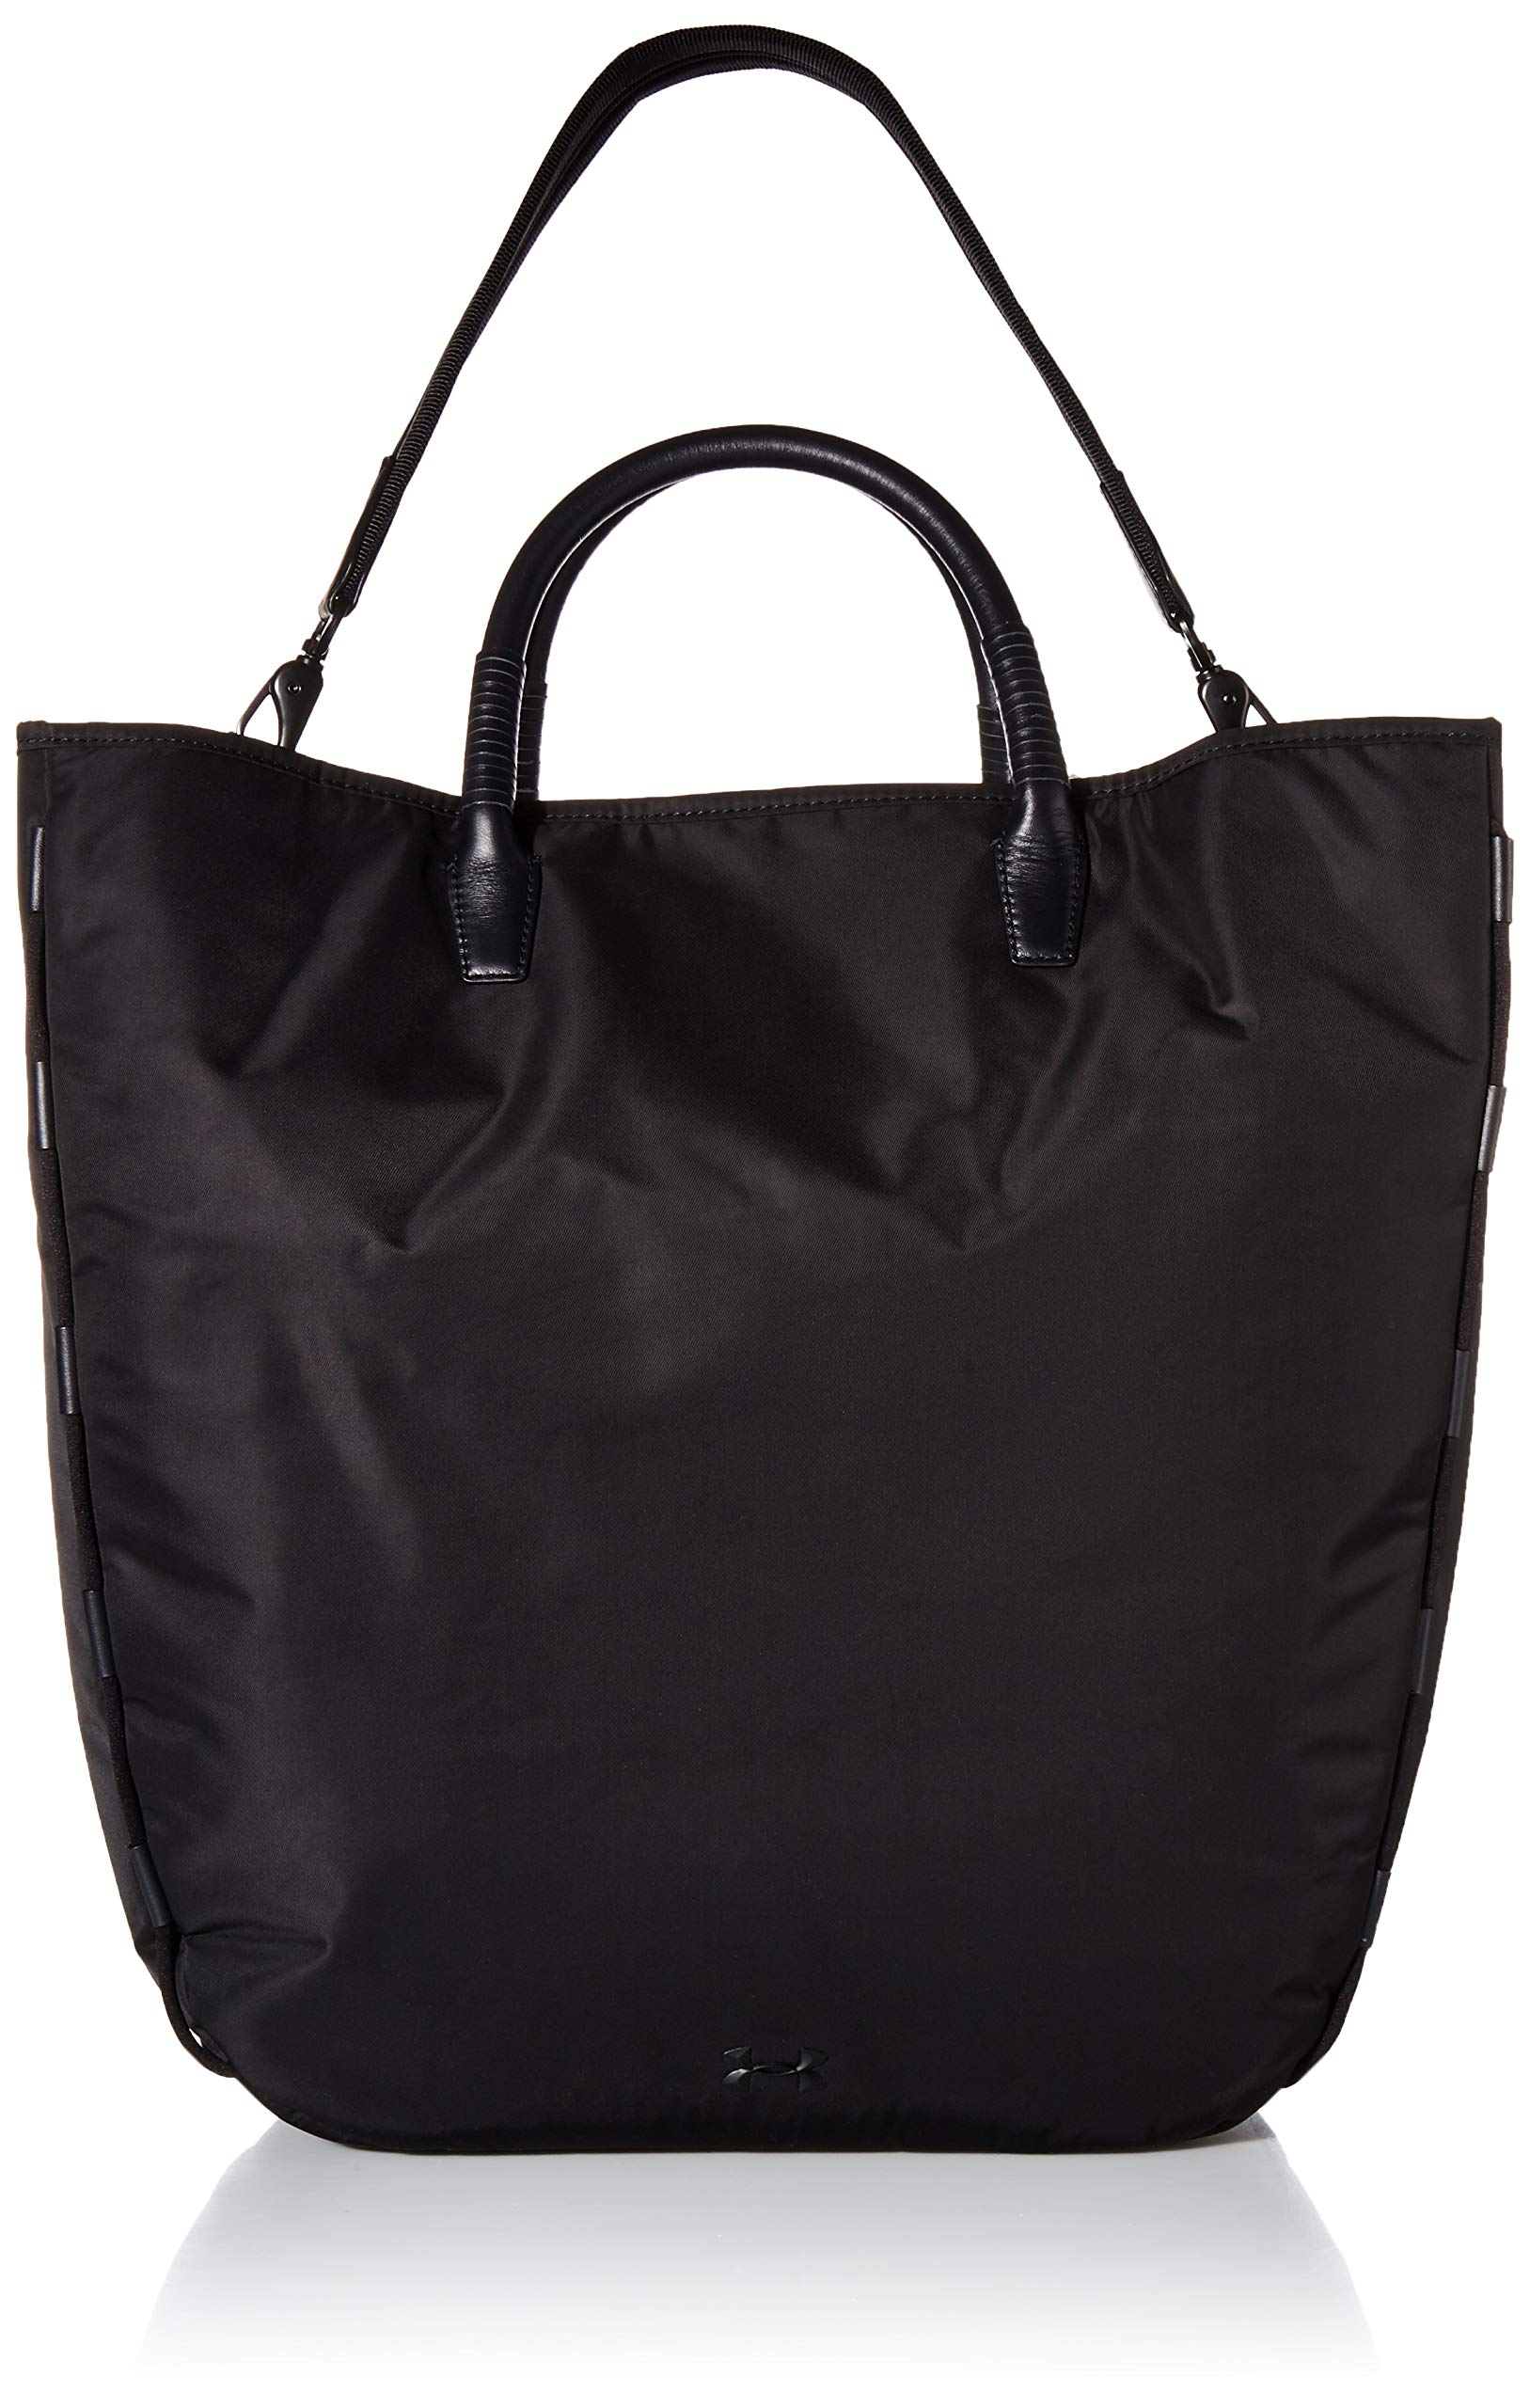 Under Armour Women's Misty Tote, Black (001)/Black, One Size by Under Armour